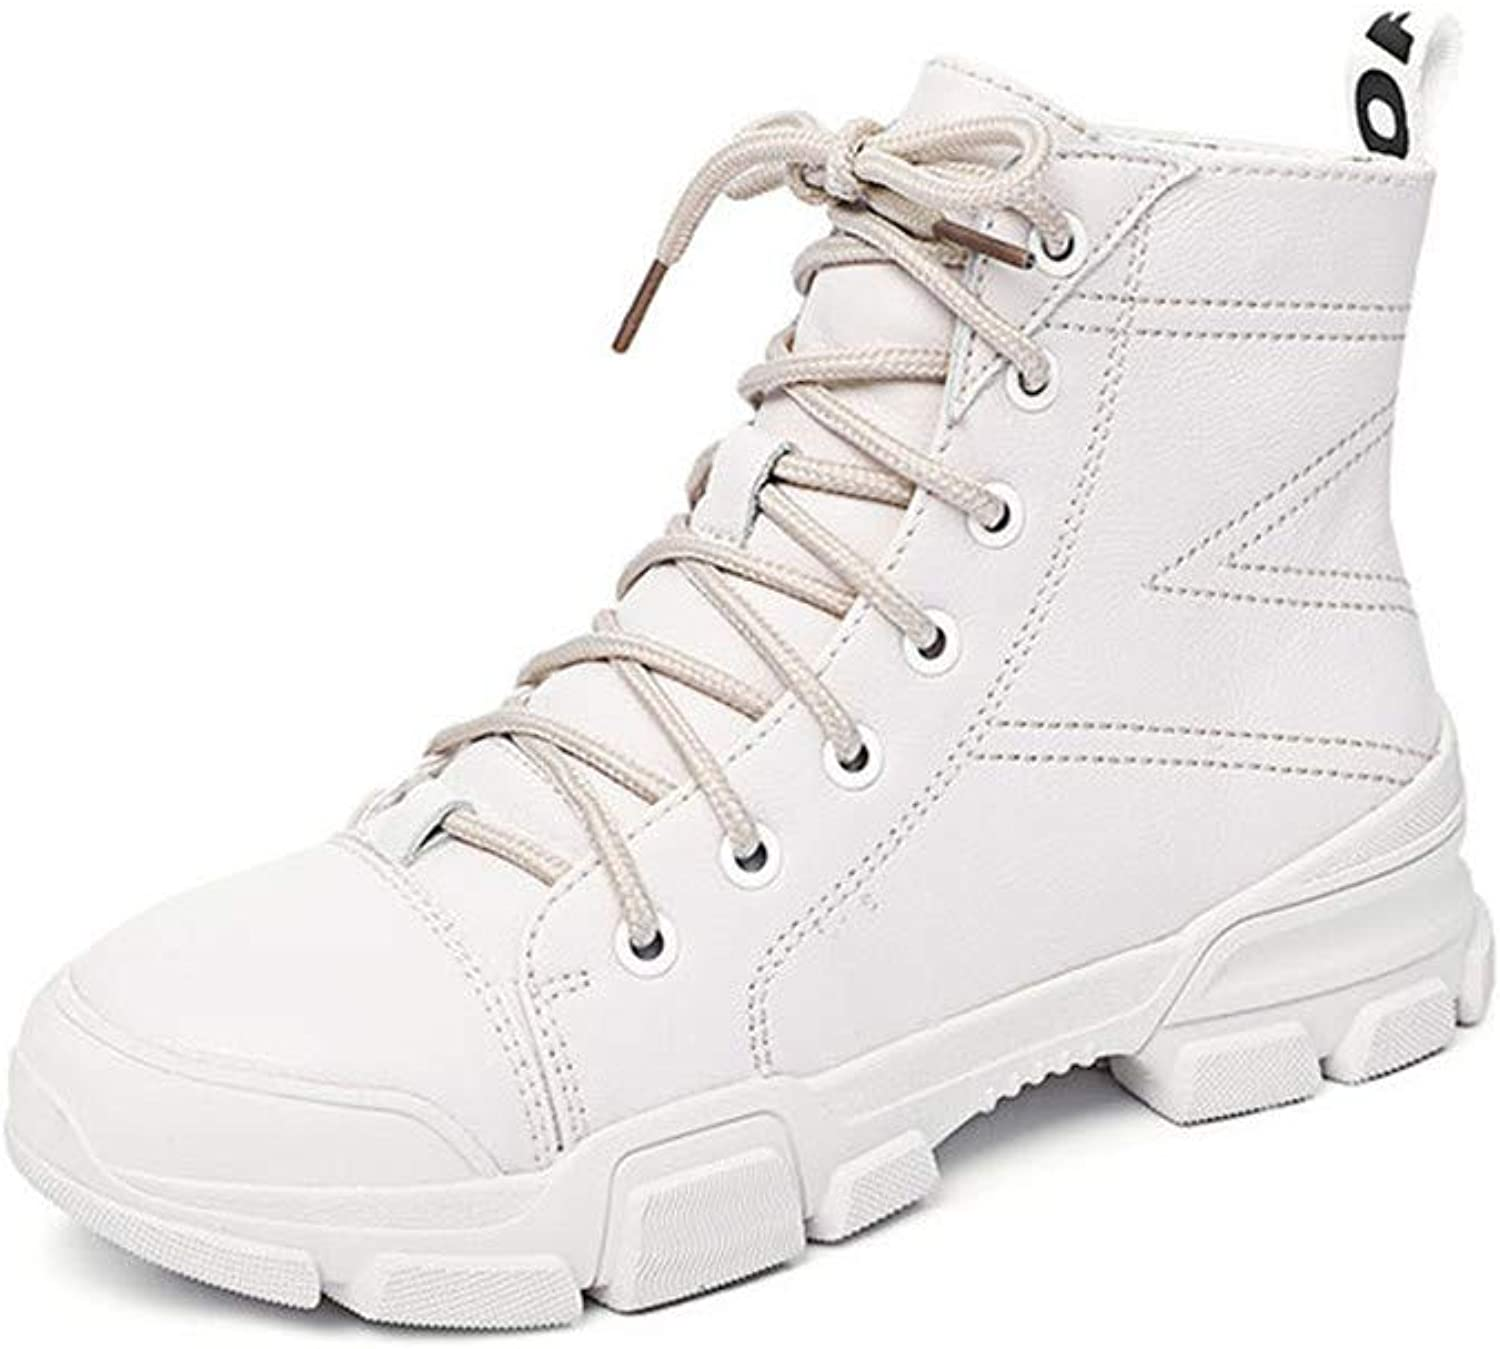 Womens Winter Lace Up Boots Ladies Martin Ankle Boot Work Hiking Trail Biker shoes (color   White)